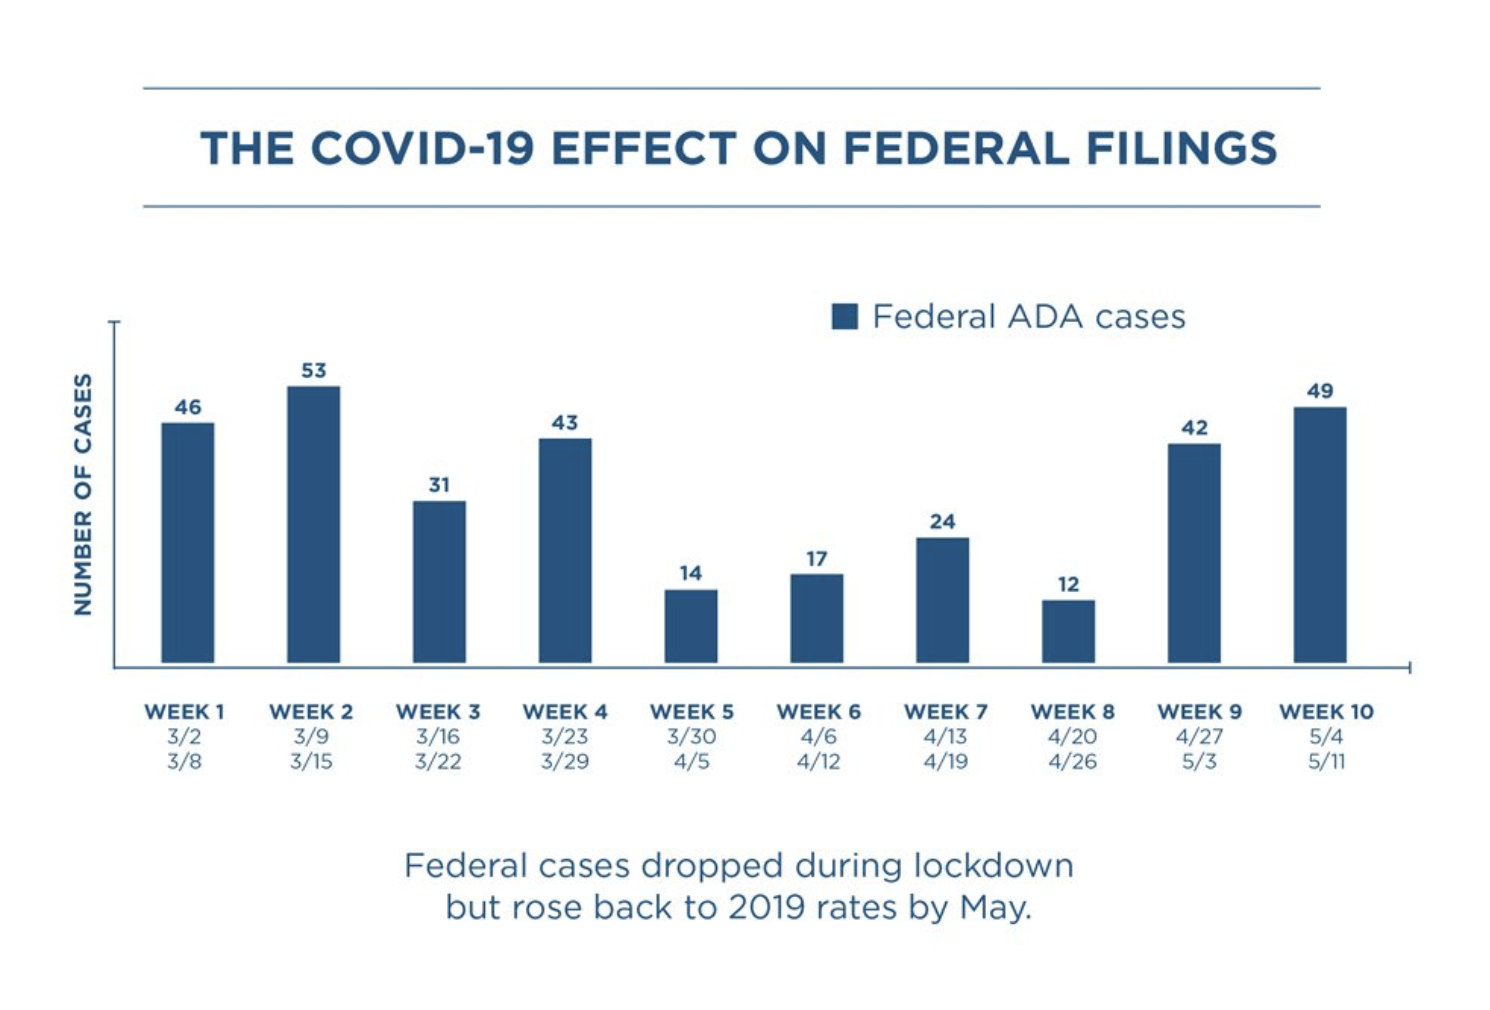 Bar chart from March 2 - May 11 by week for federal ADA cases. In early March from the second to the 29th, cases average about 43 cases filed each week. The chart shows a significant dip in cases at week 5, March 30- April 5 from 43 cases in week 4 to just 14 cases in week 5. Week 6 has 17 cases; week 7 has 24 cases; week 8 has 12 cases; week 9 rises again to 43 cases a week and week 10, May 4-11 has 49 cases.  Text reads: Federal cases dropped during lock-down but rose back to 2019 rates by May.